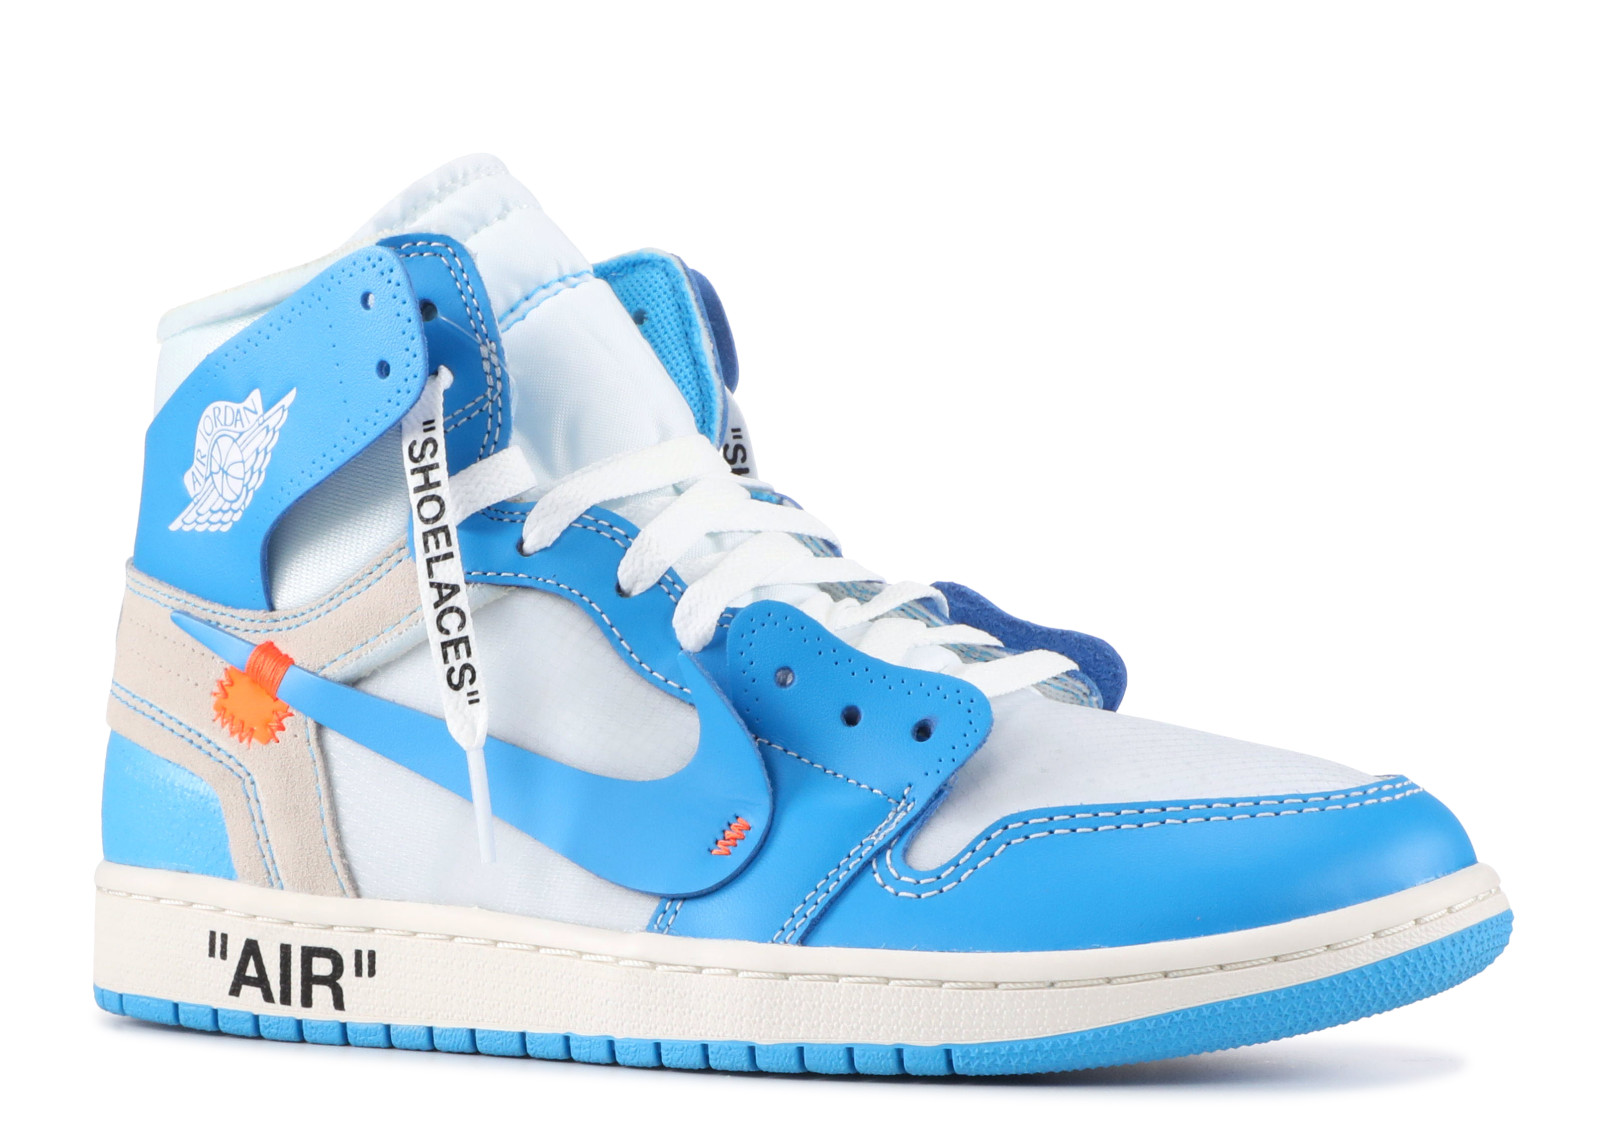 Air Jordan - Men - Jordan 1 Retro High Unc  Off White  - Aq0818-148 - Size  10 f5c4d9eec